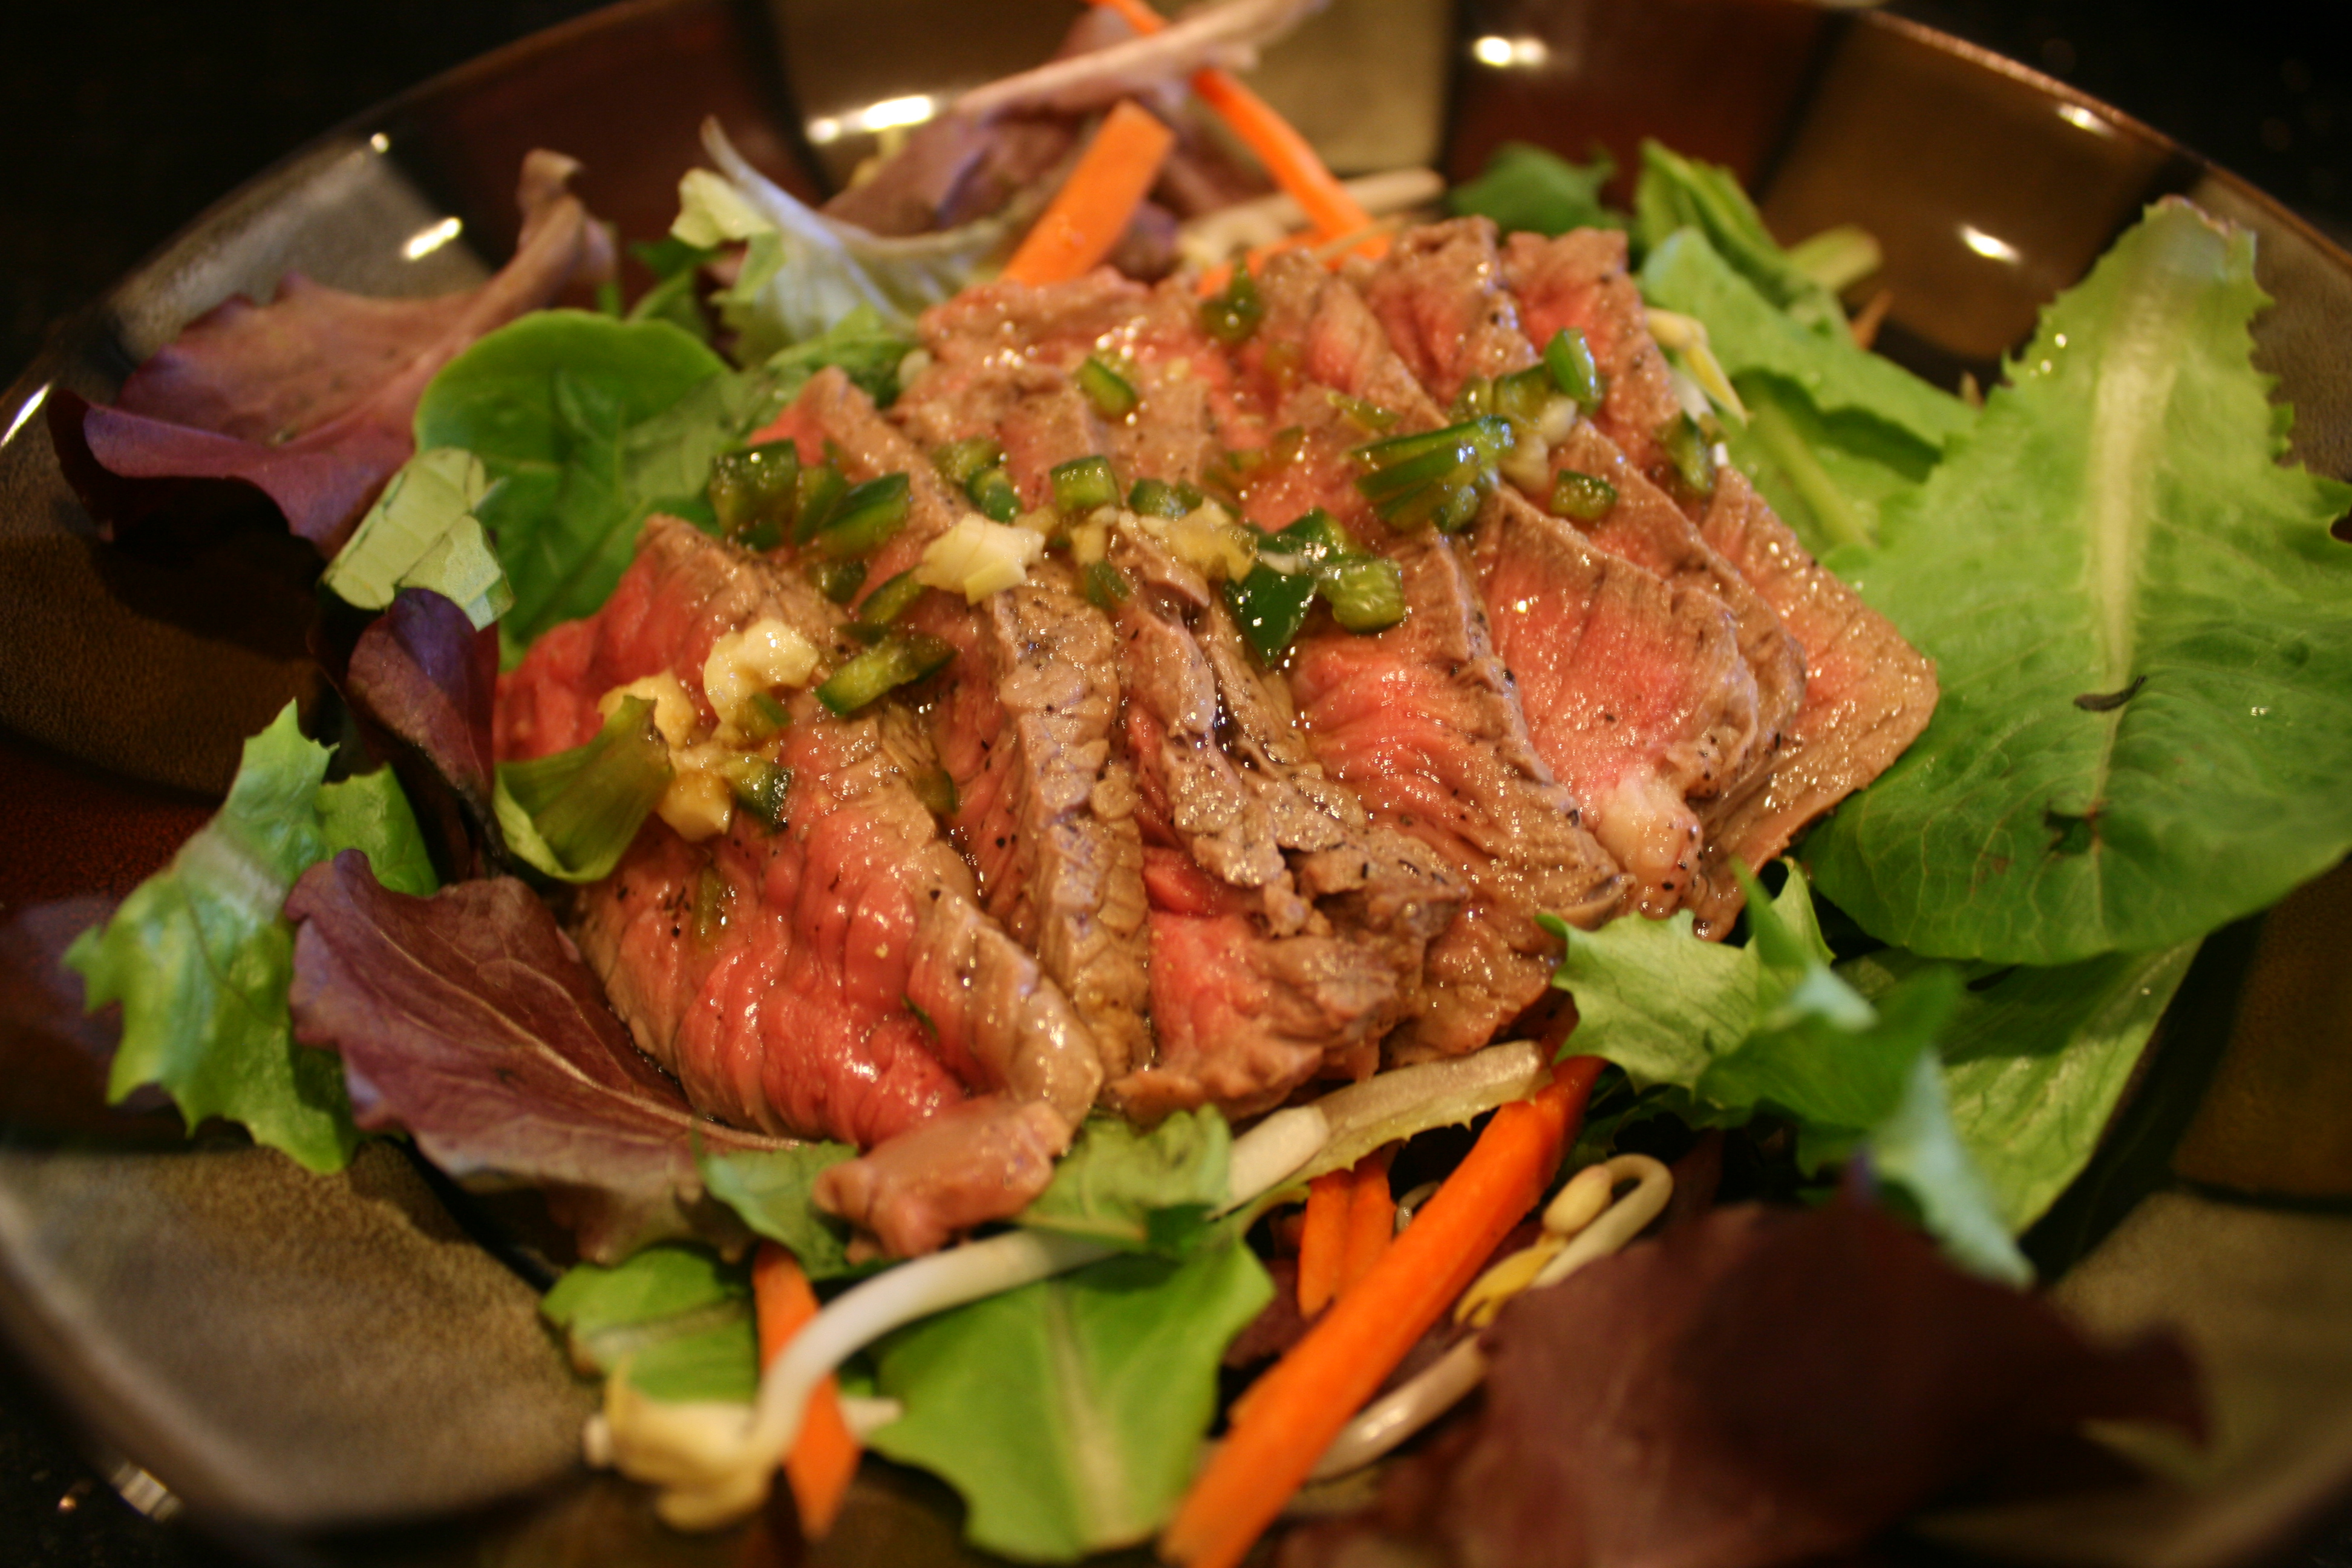 Recipes Course Salad Meat and Seafood Thai-Style Grilled Beef Salad